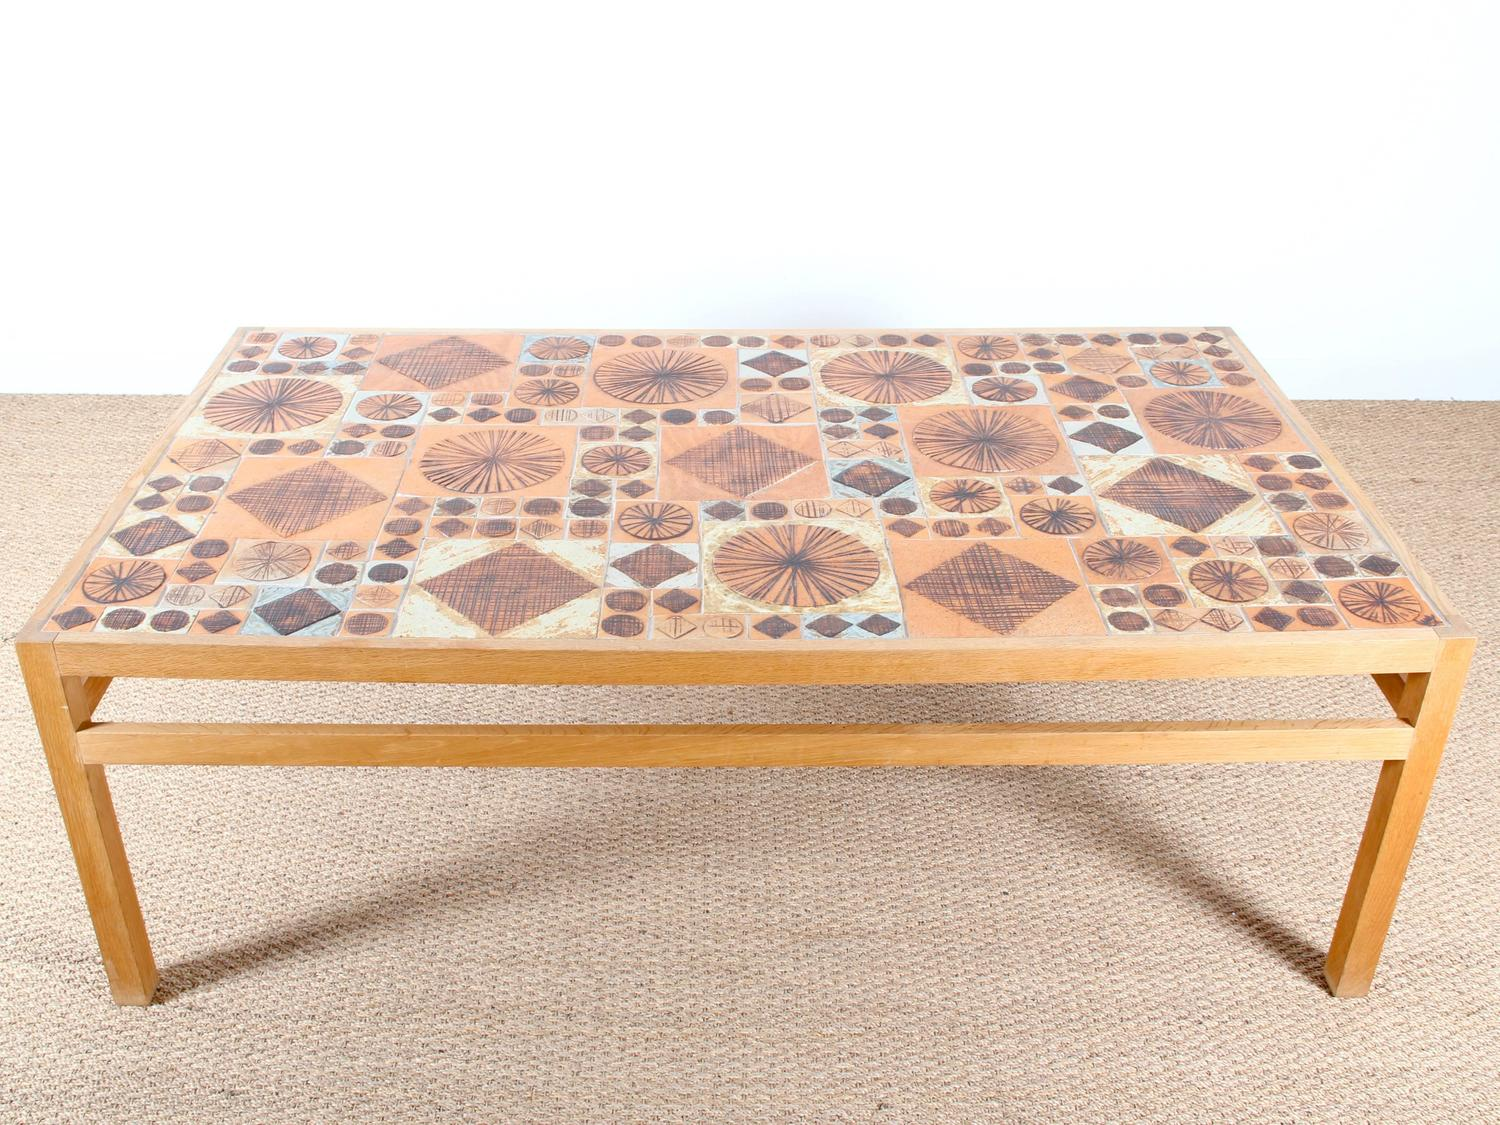 Ceramic Tile Top Coffee Table Designed By Tue Poulsen For Sale At 1stdibs